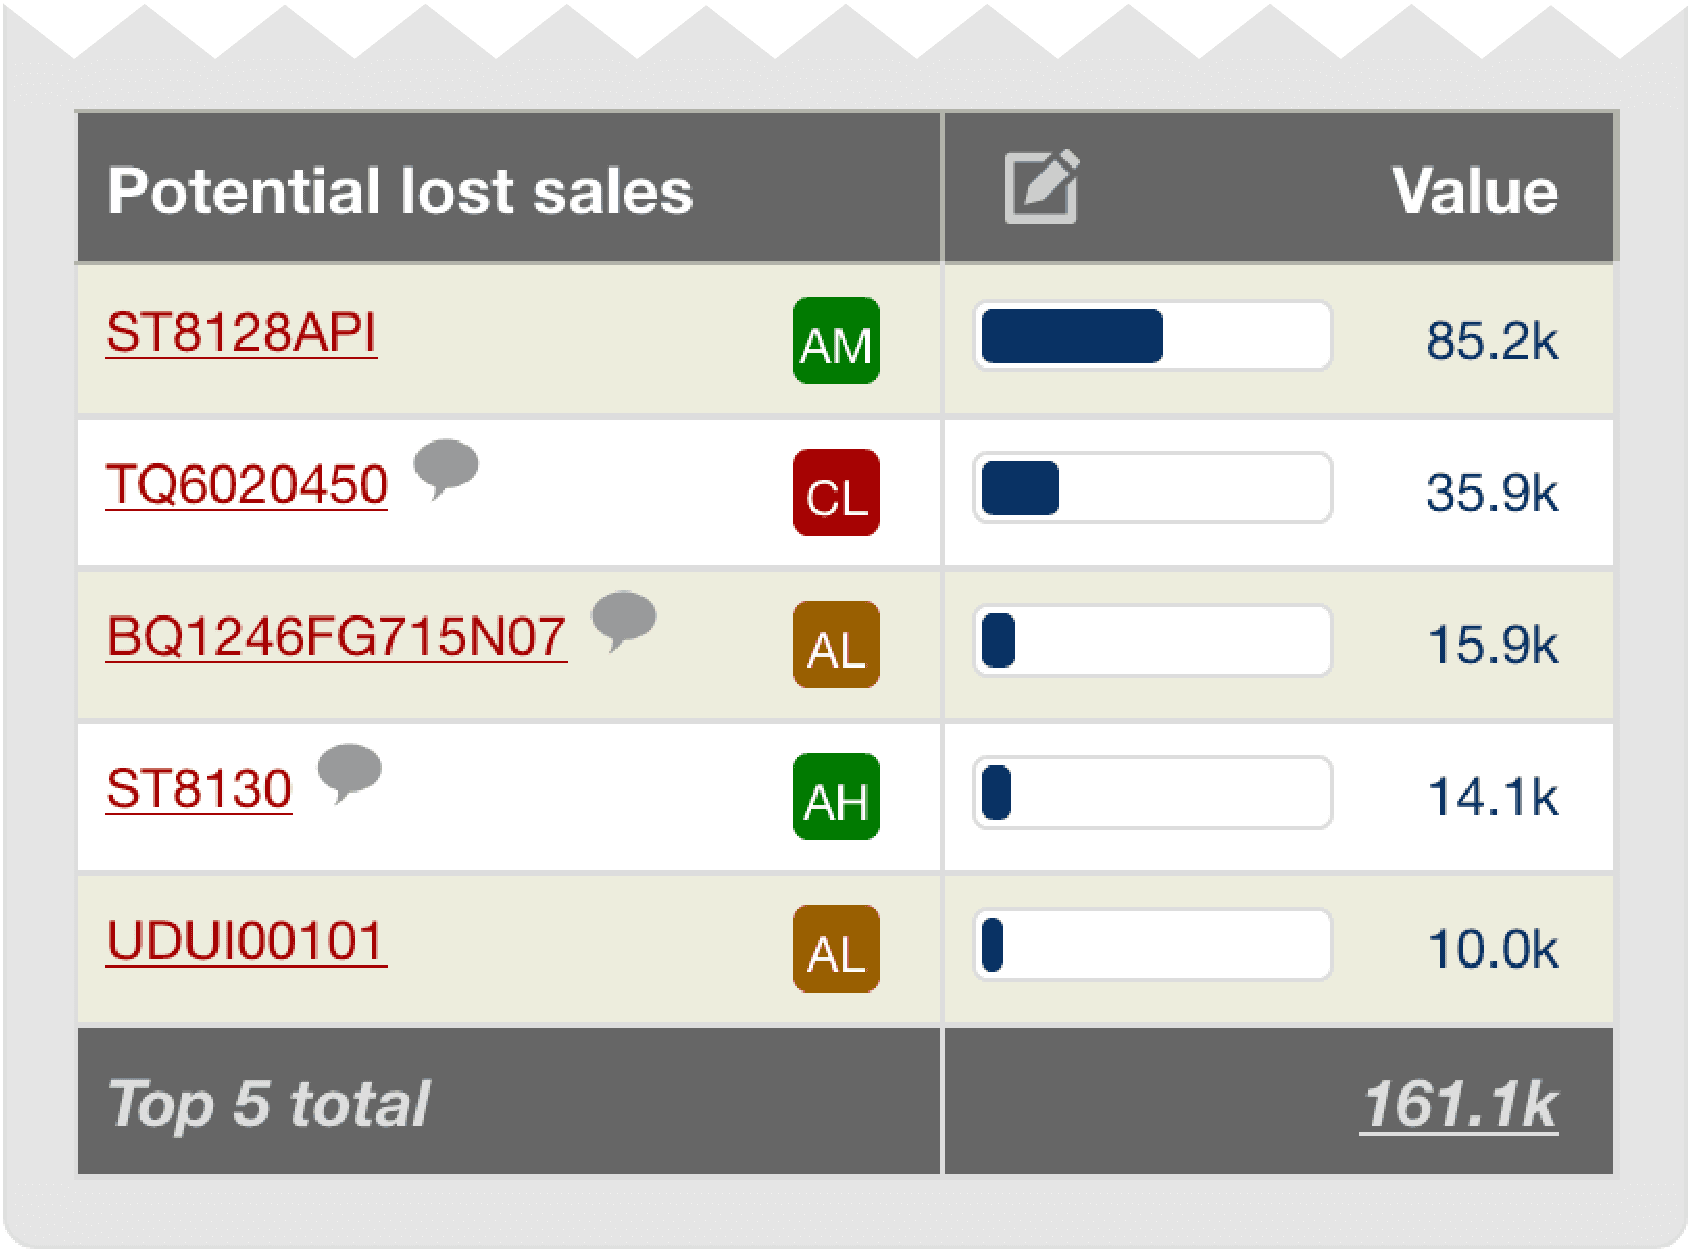 dashboard_potential_stock_outs-02.png